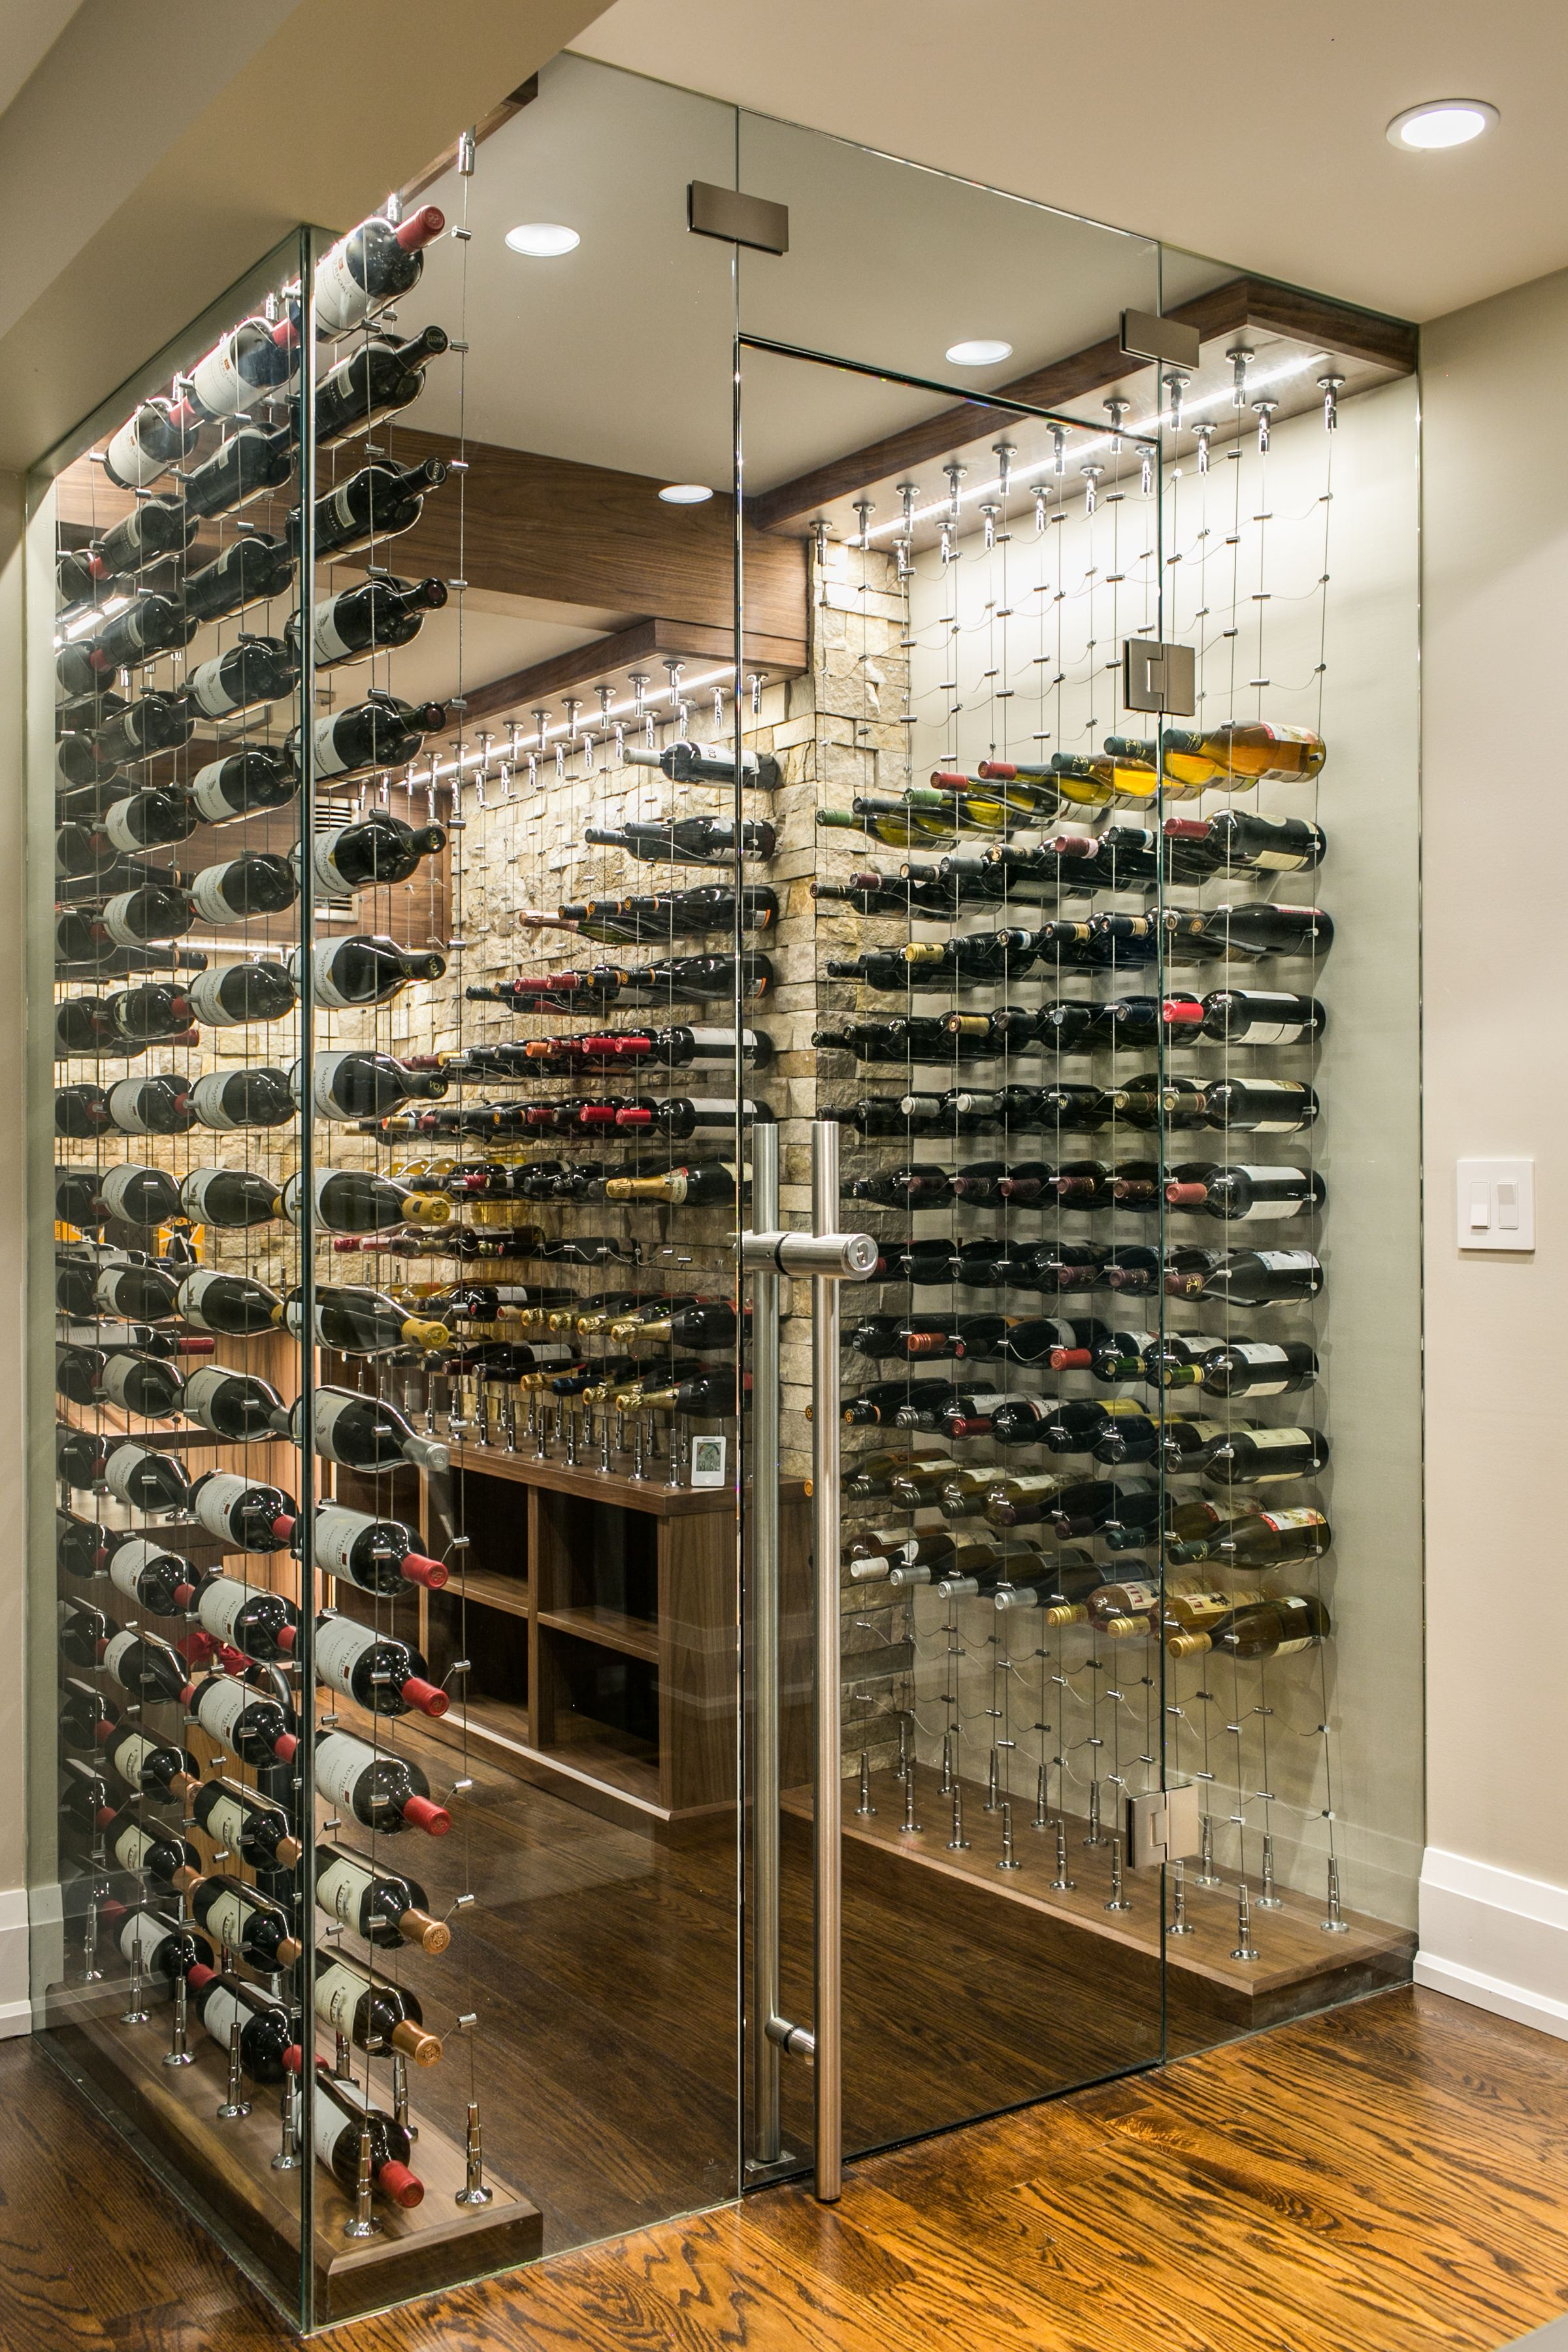 Custom Wine Cellar By Papro Wine Cellars Consulting Featuring The Cable Wine Sytem Glass Wine Cellar Wine Cellar Modern Home Wine Cellars